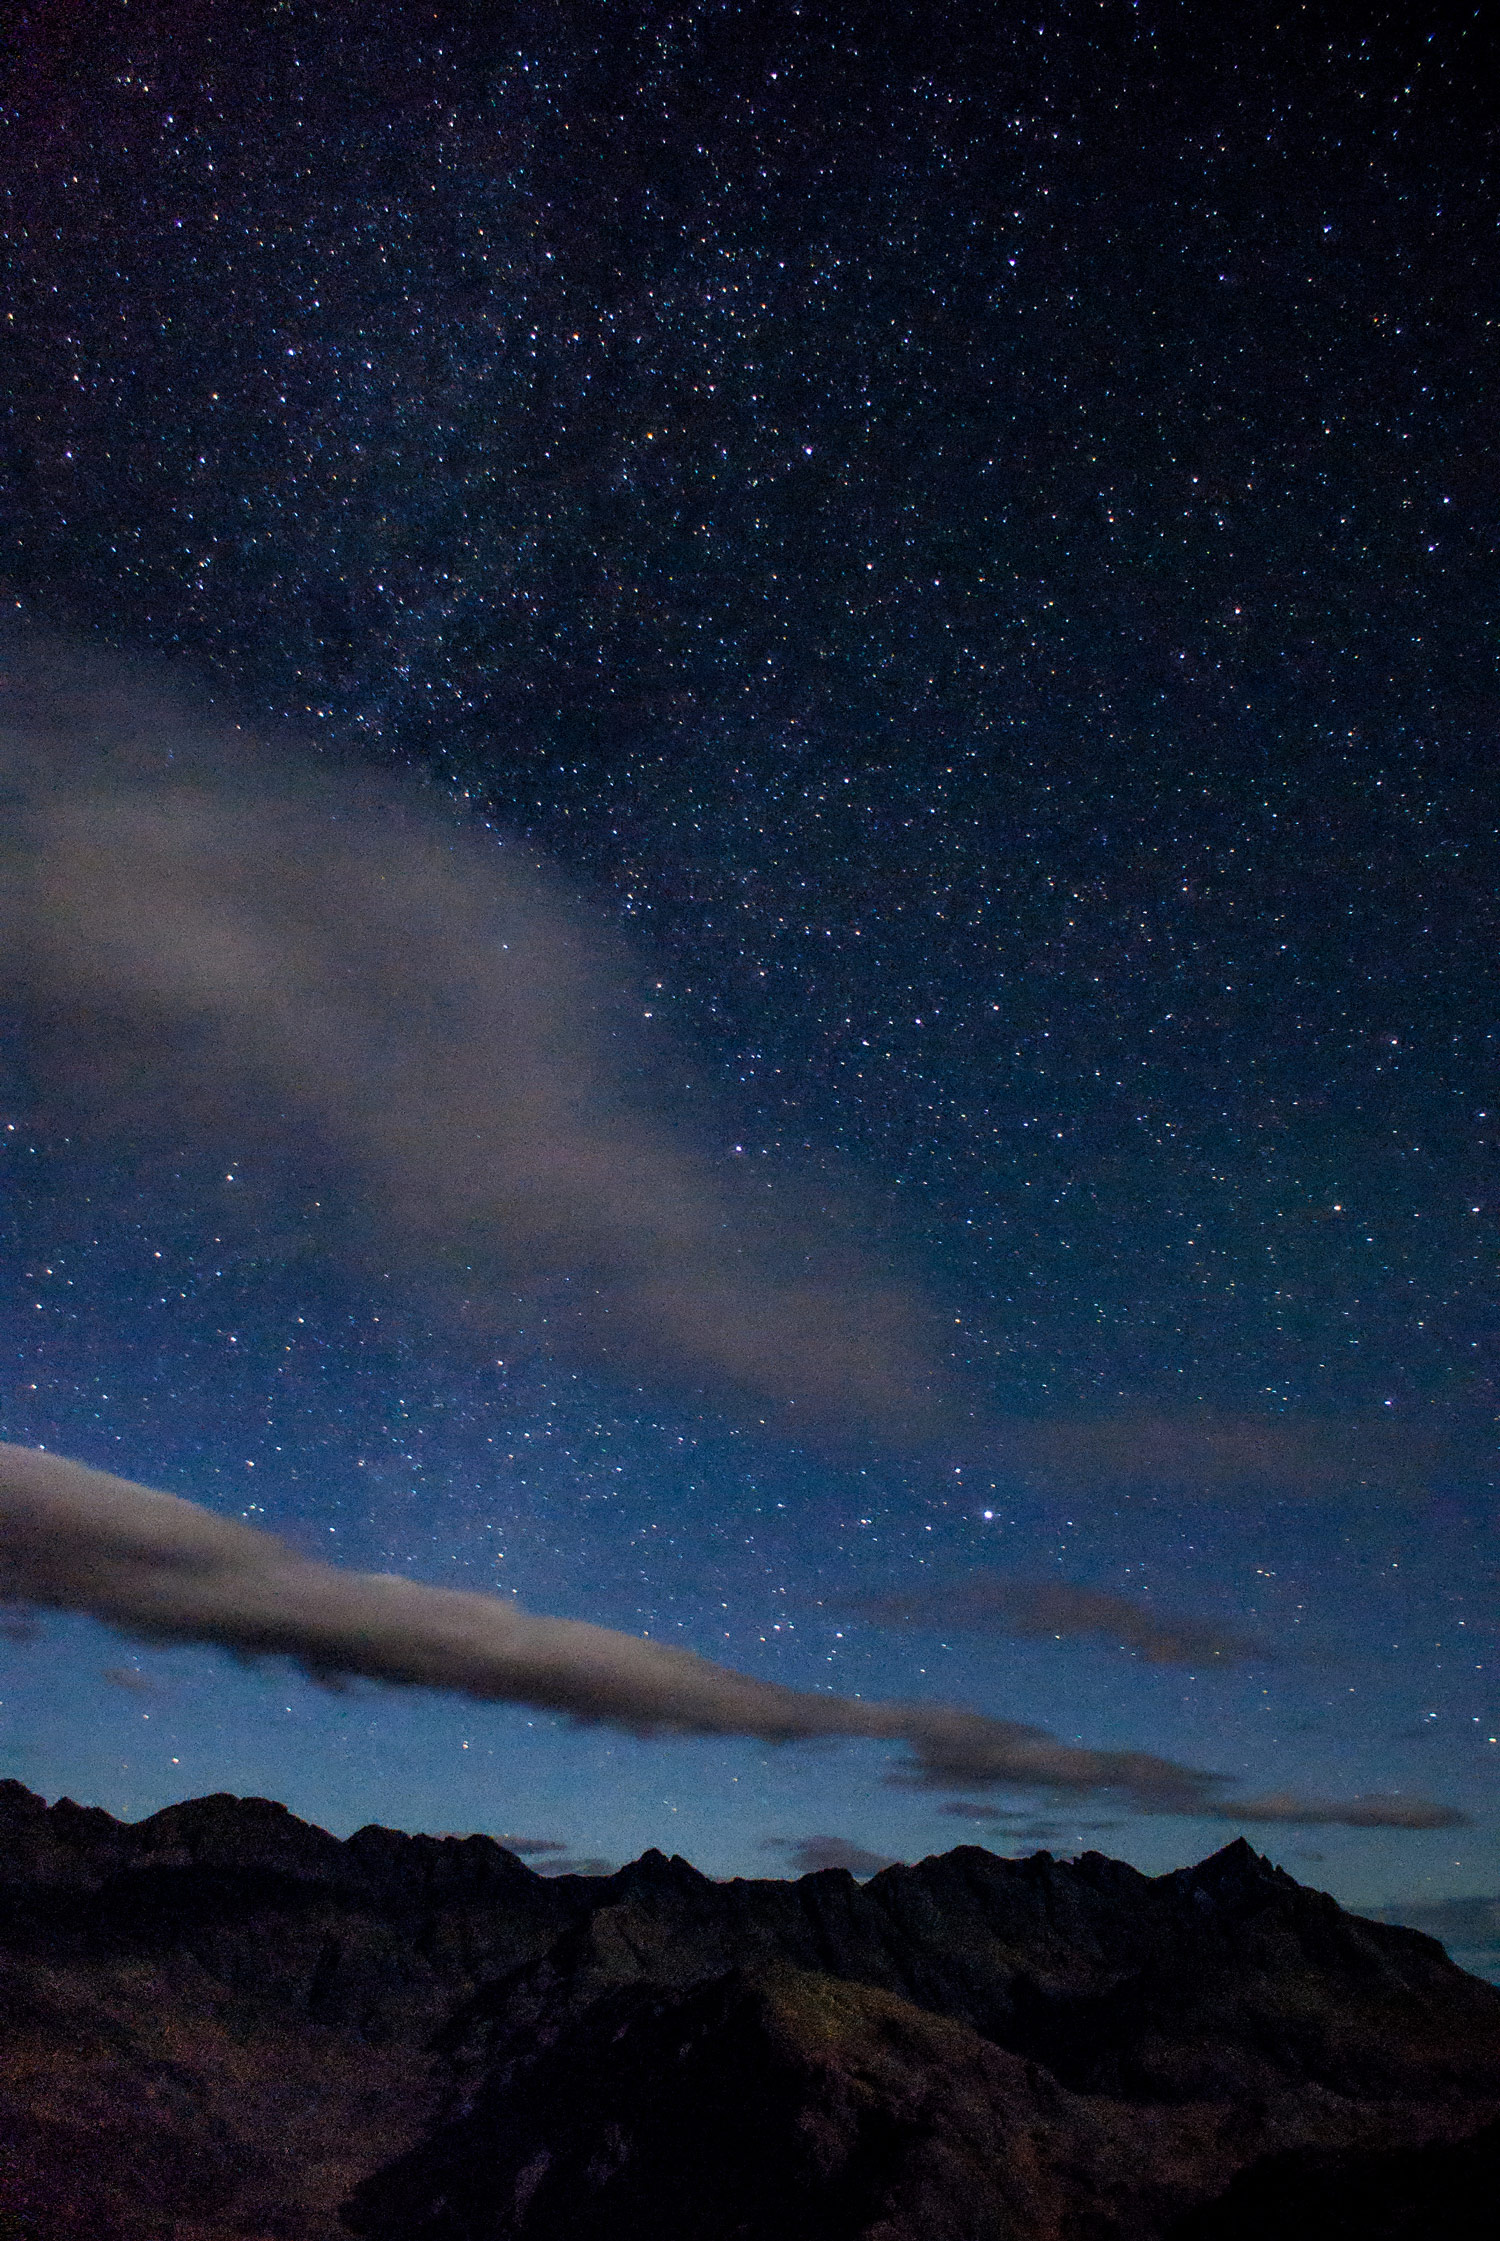 A first attempt at photographing the night sky over the Cuillin.